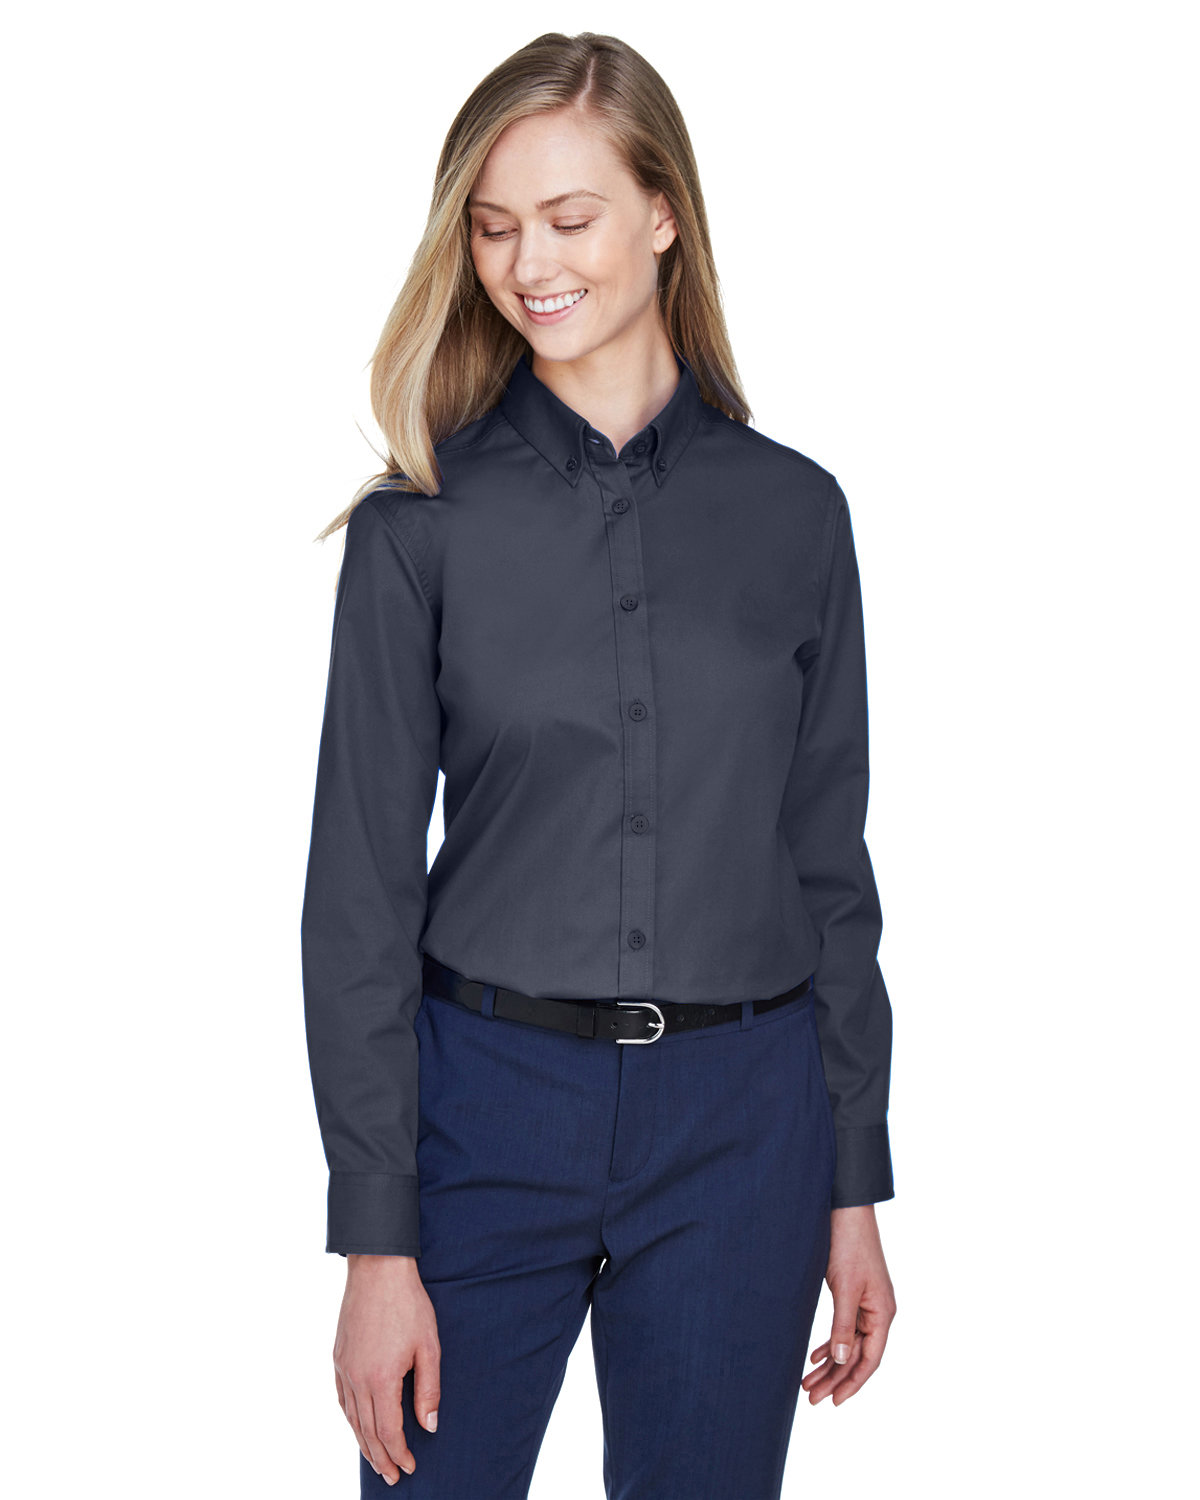 Core 365 Ladies' Operate Long-Sleeve Twill Shirt CARBON